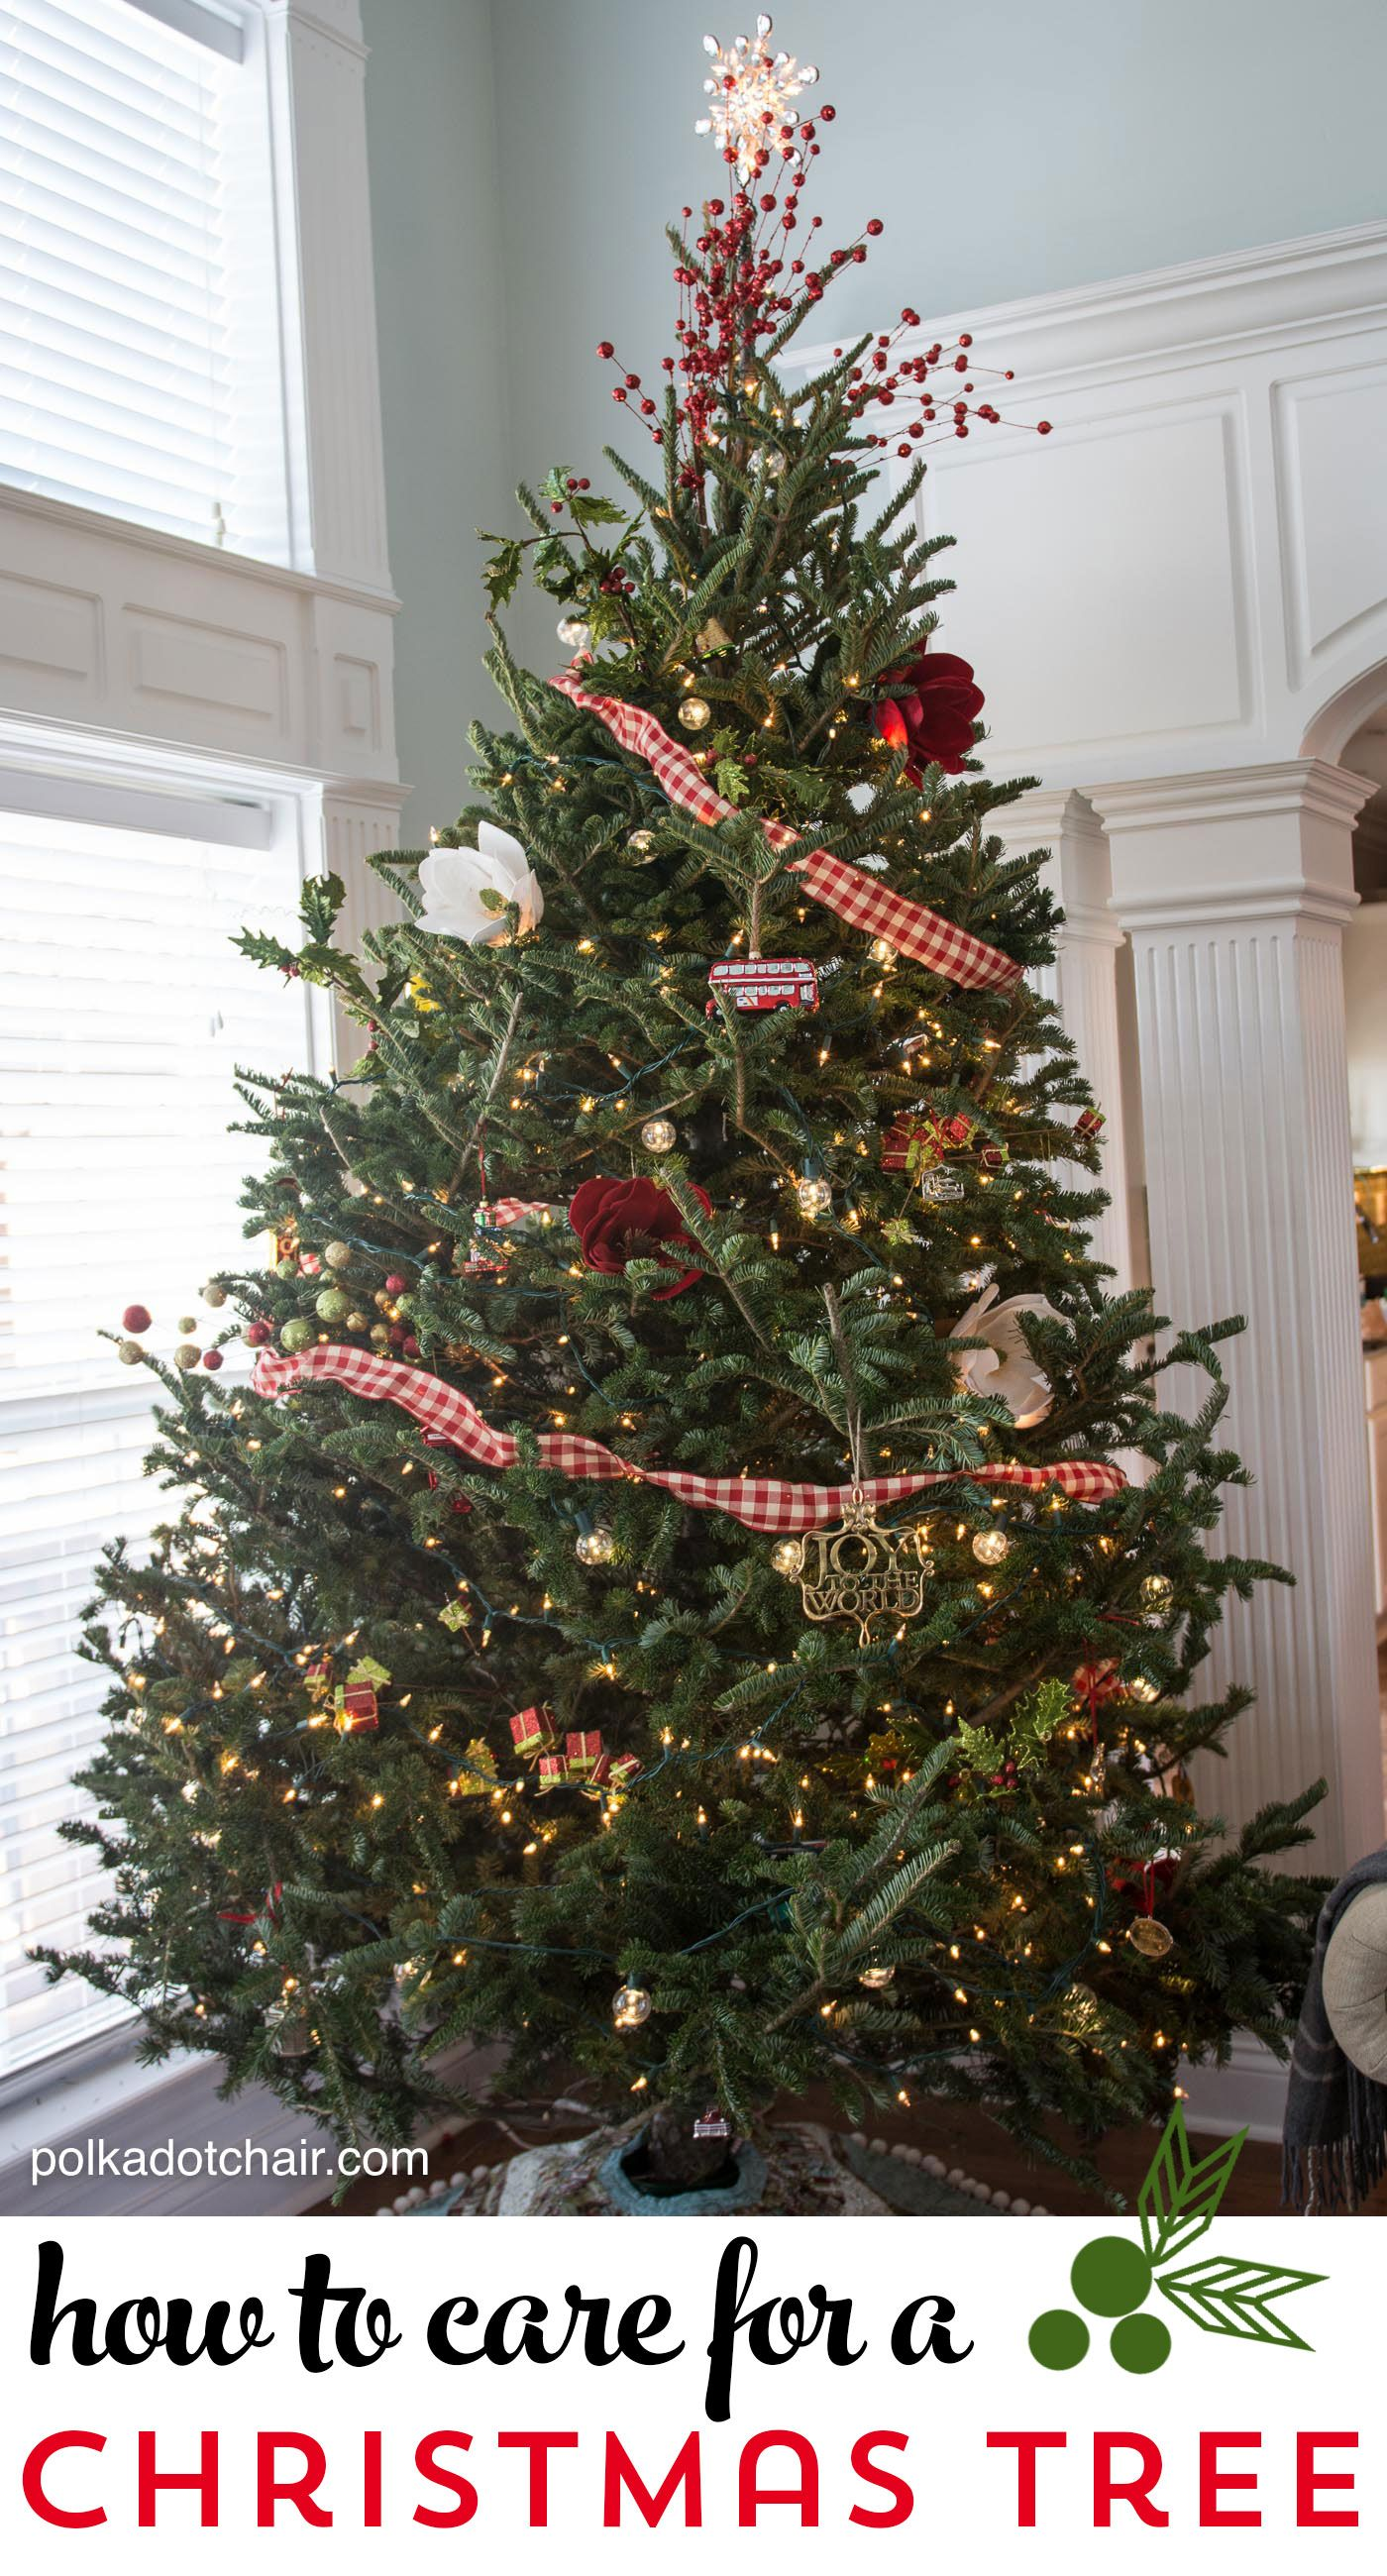 Tips And Tricks For Caring For A Fresh Christmas Tree Live Christmas Trees Holiday Christmas Tree Christmas